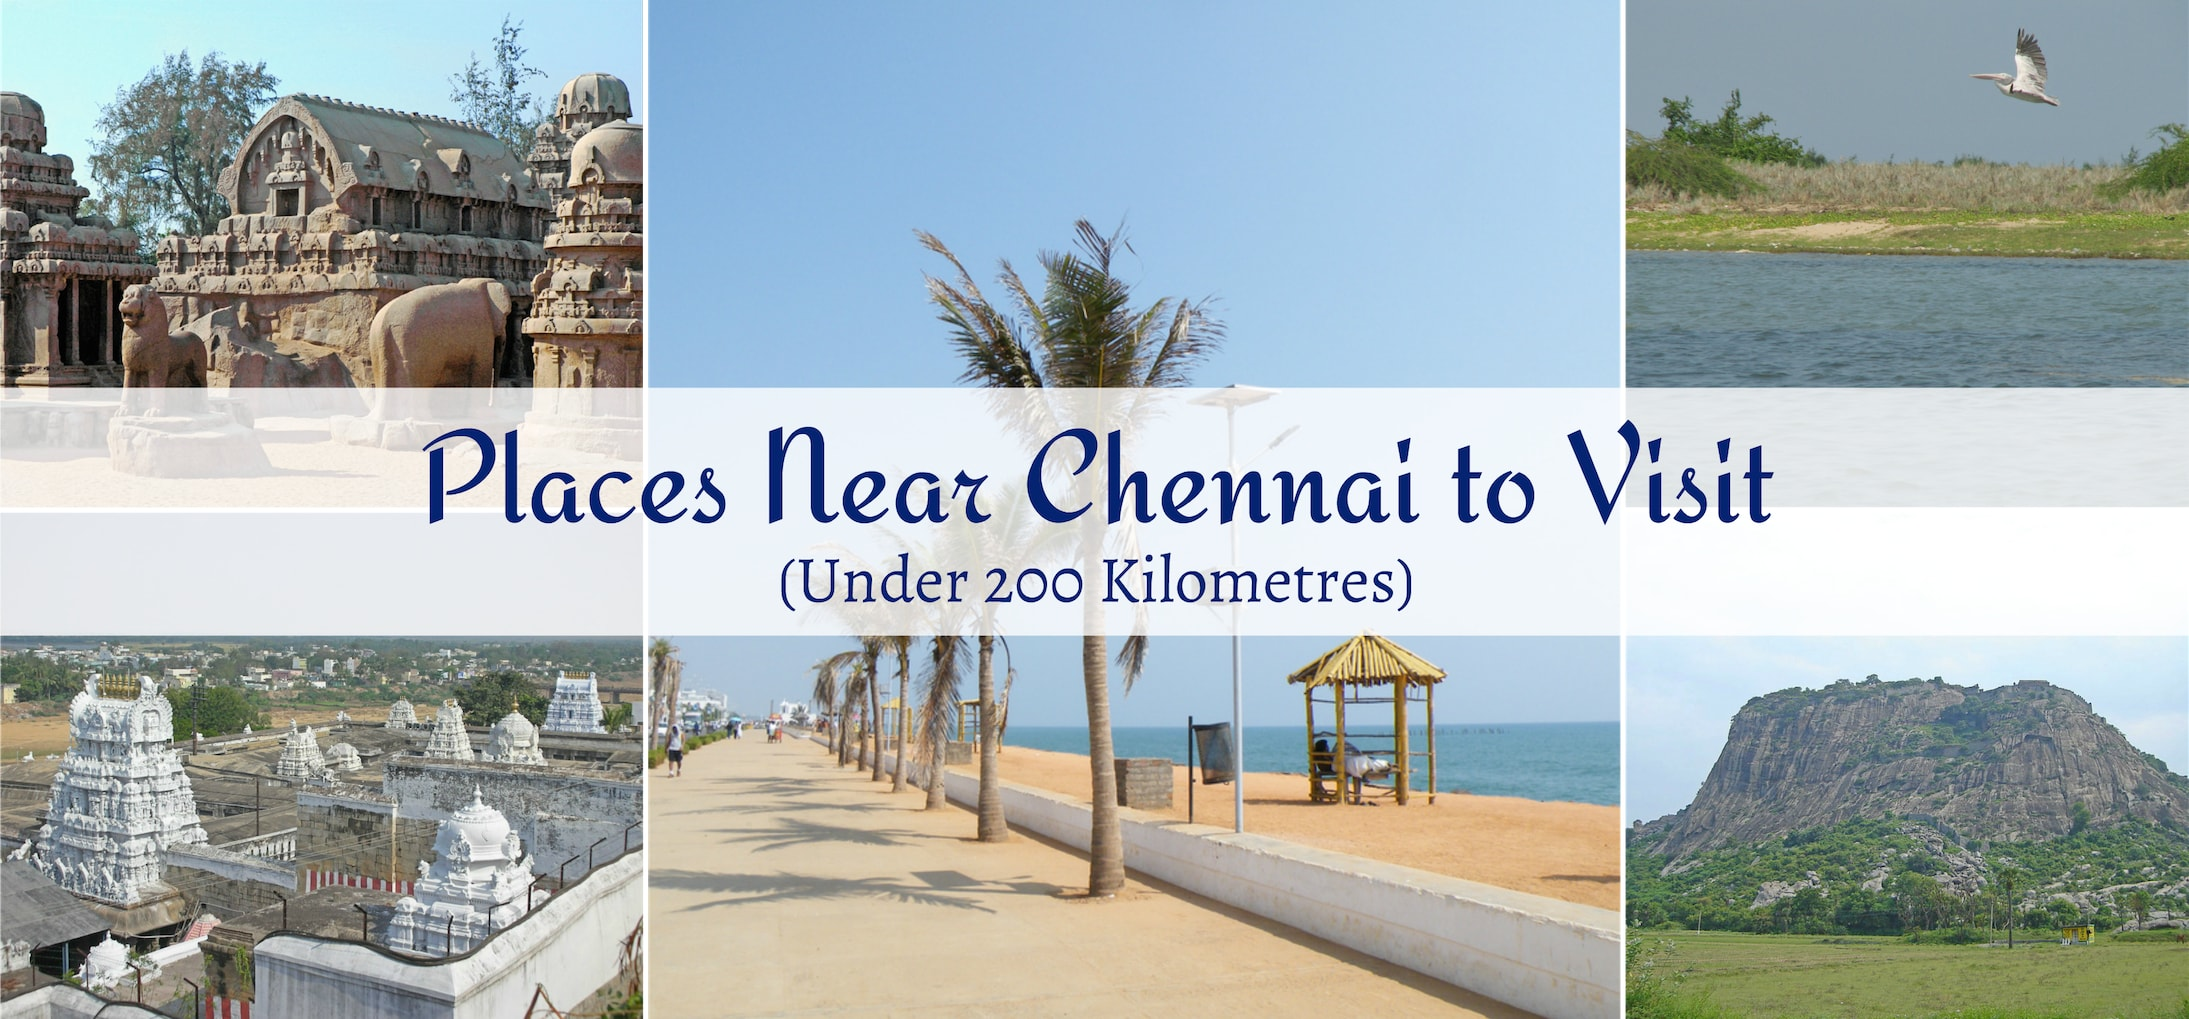 Chennai Places Near.jpg